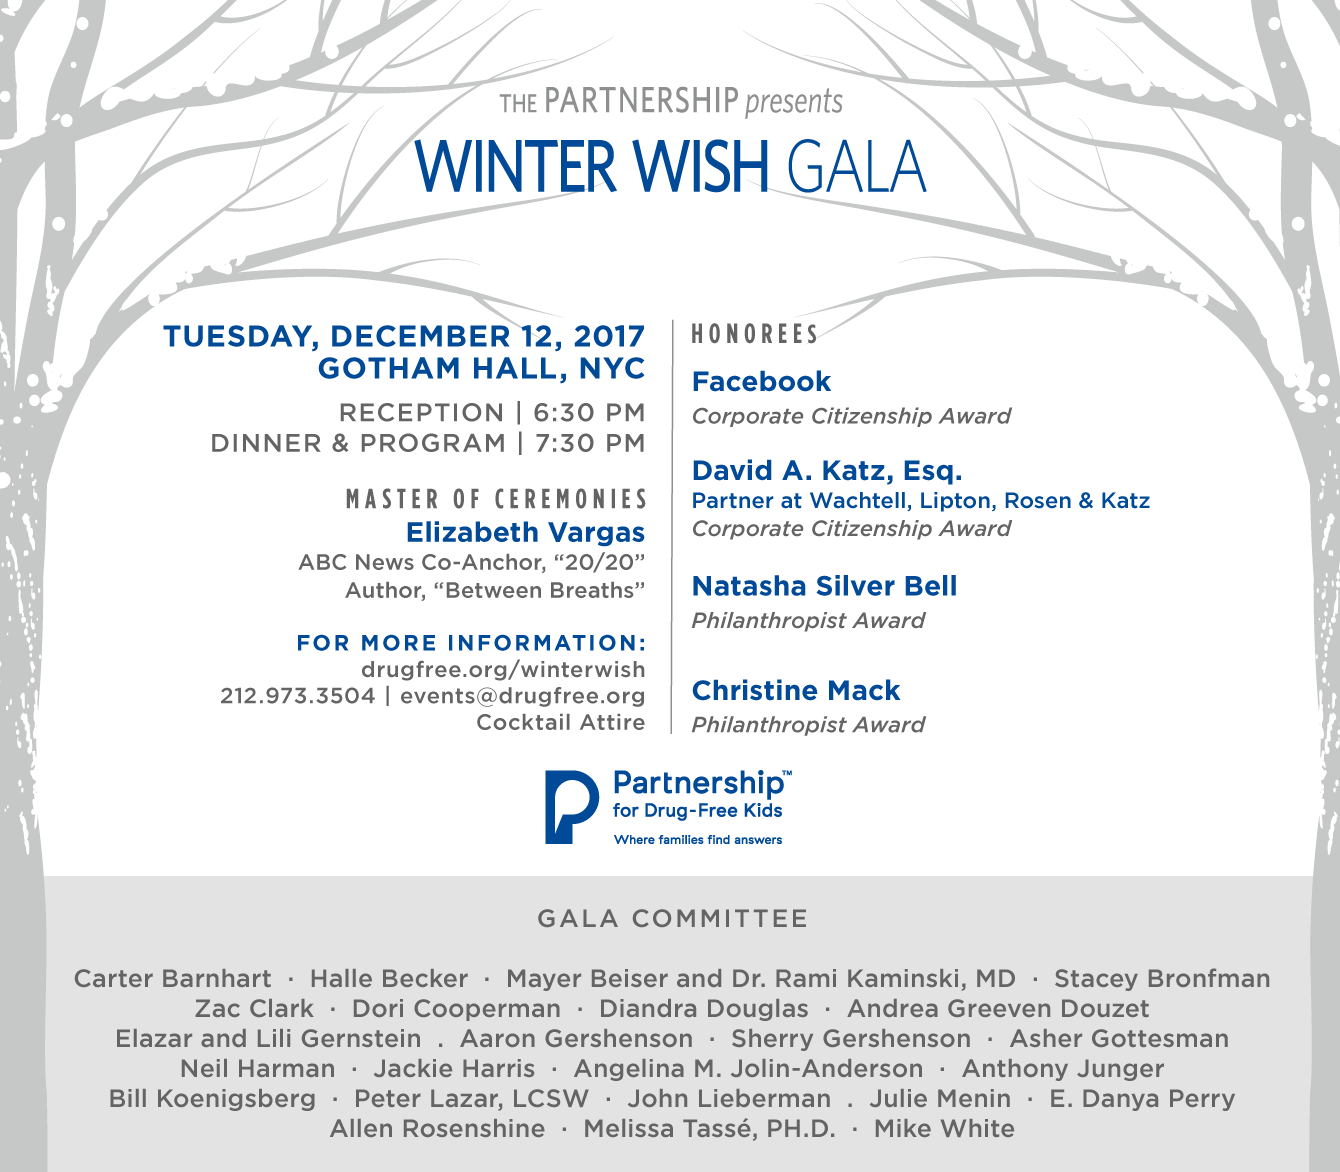 We Are Delighted to Invite You to Our Winter Wish Gala